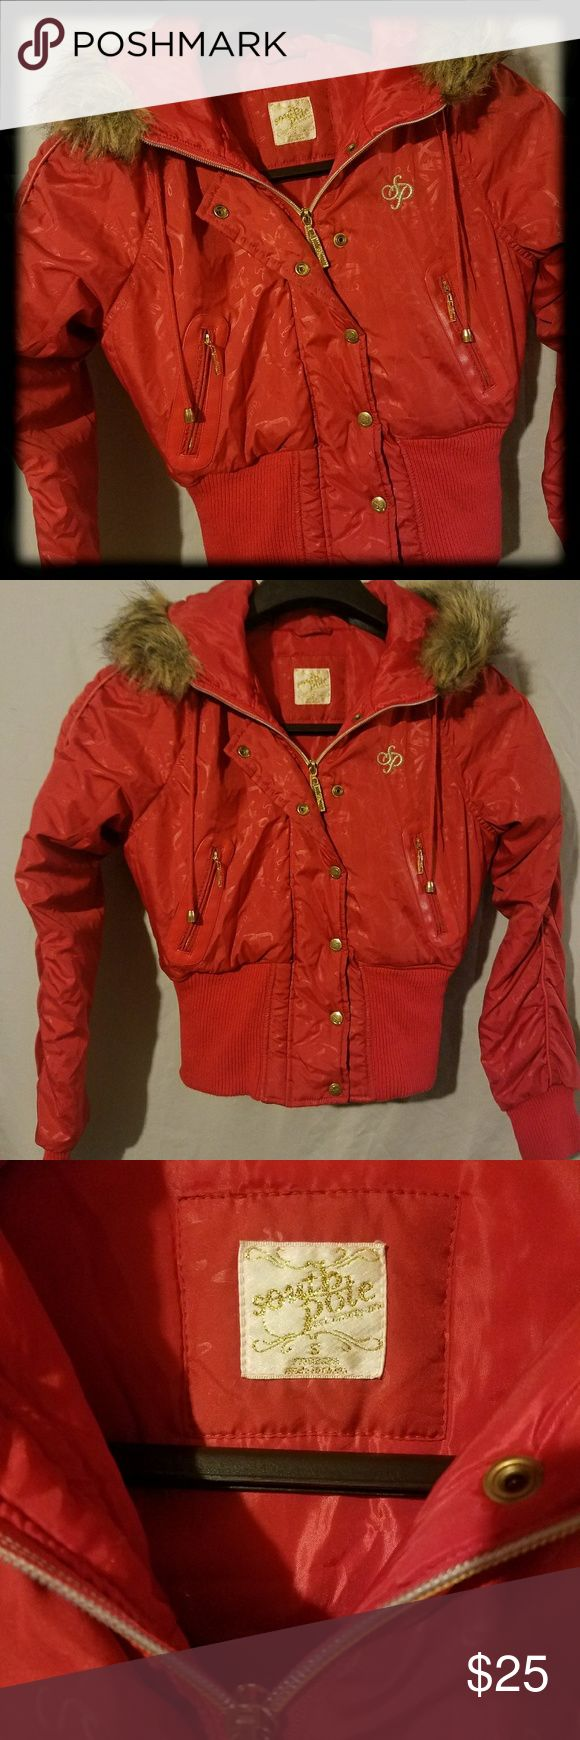 South Pole Women's Puffer Coat South Pole Women's Puffer Coat Sz Small. Sleeves gathered, with faux leather piping. Gold zippers, & snaps. Has slight discoloration on inside right cuff; not easily seen. Very good condition. South Pole Jackets & Coats Puffers